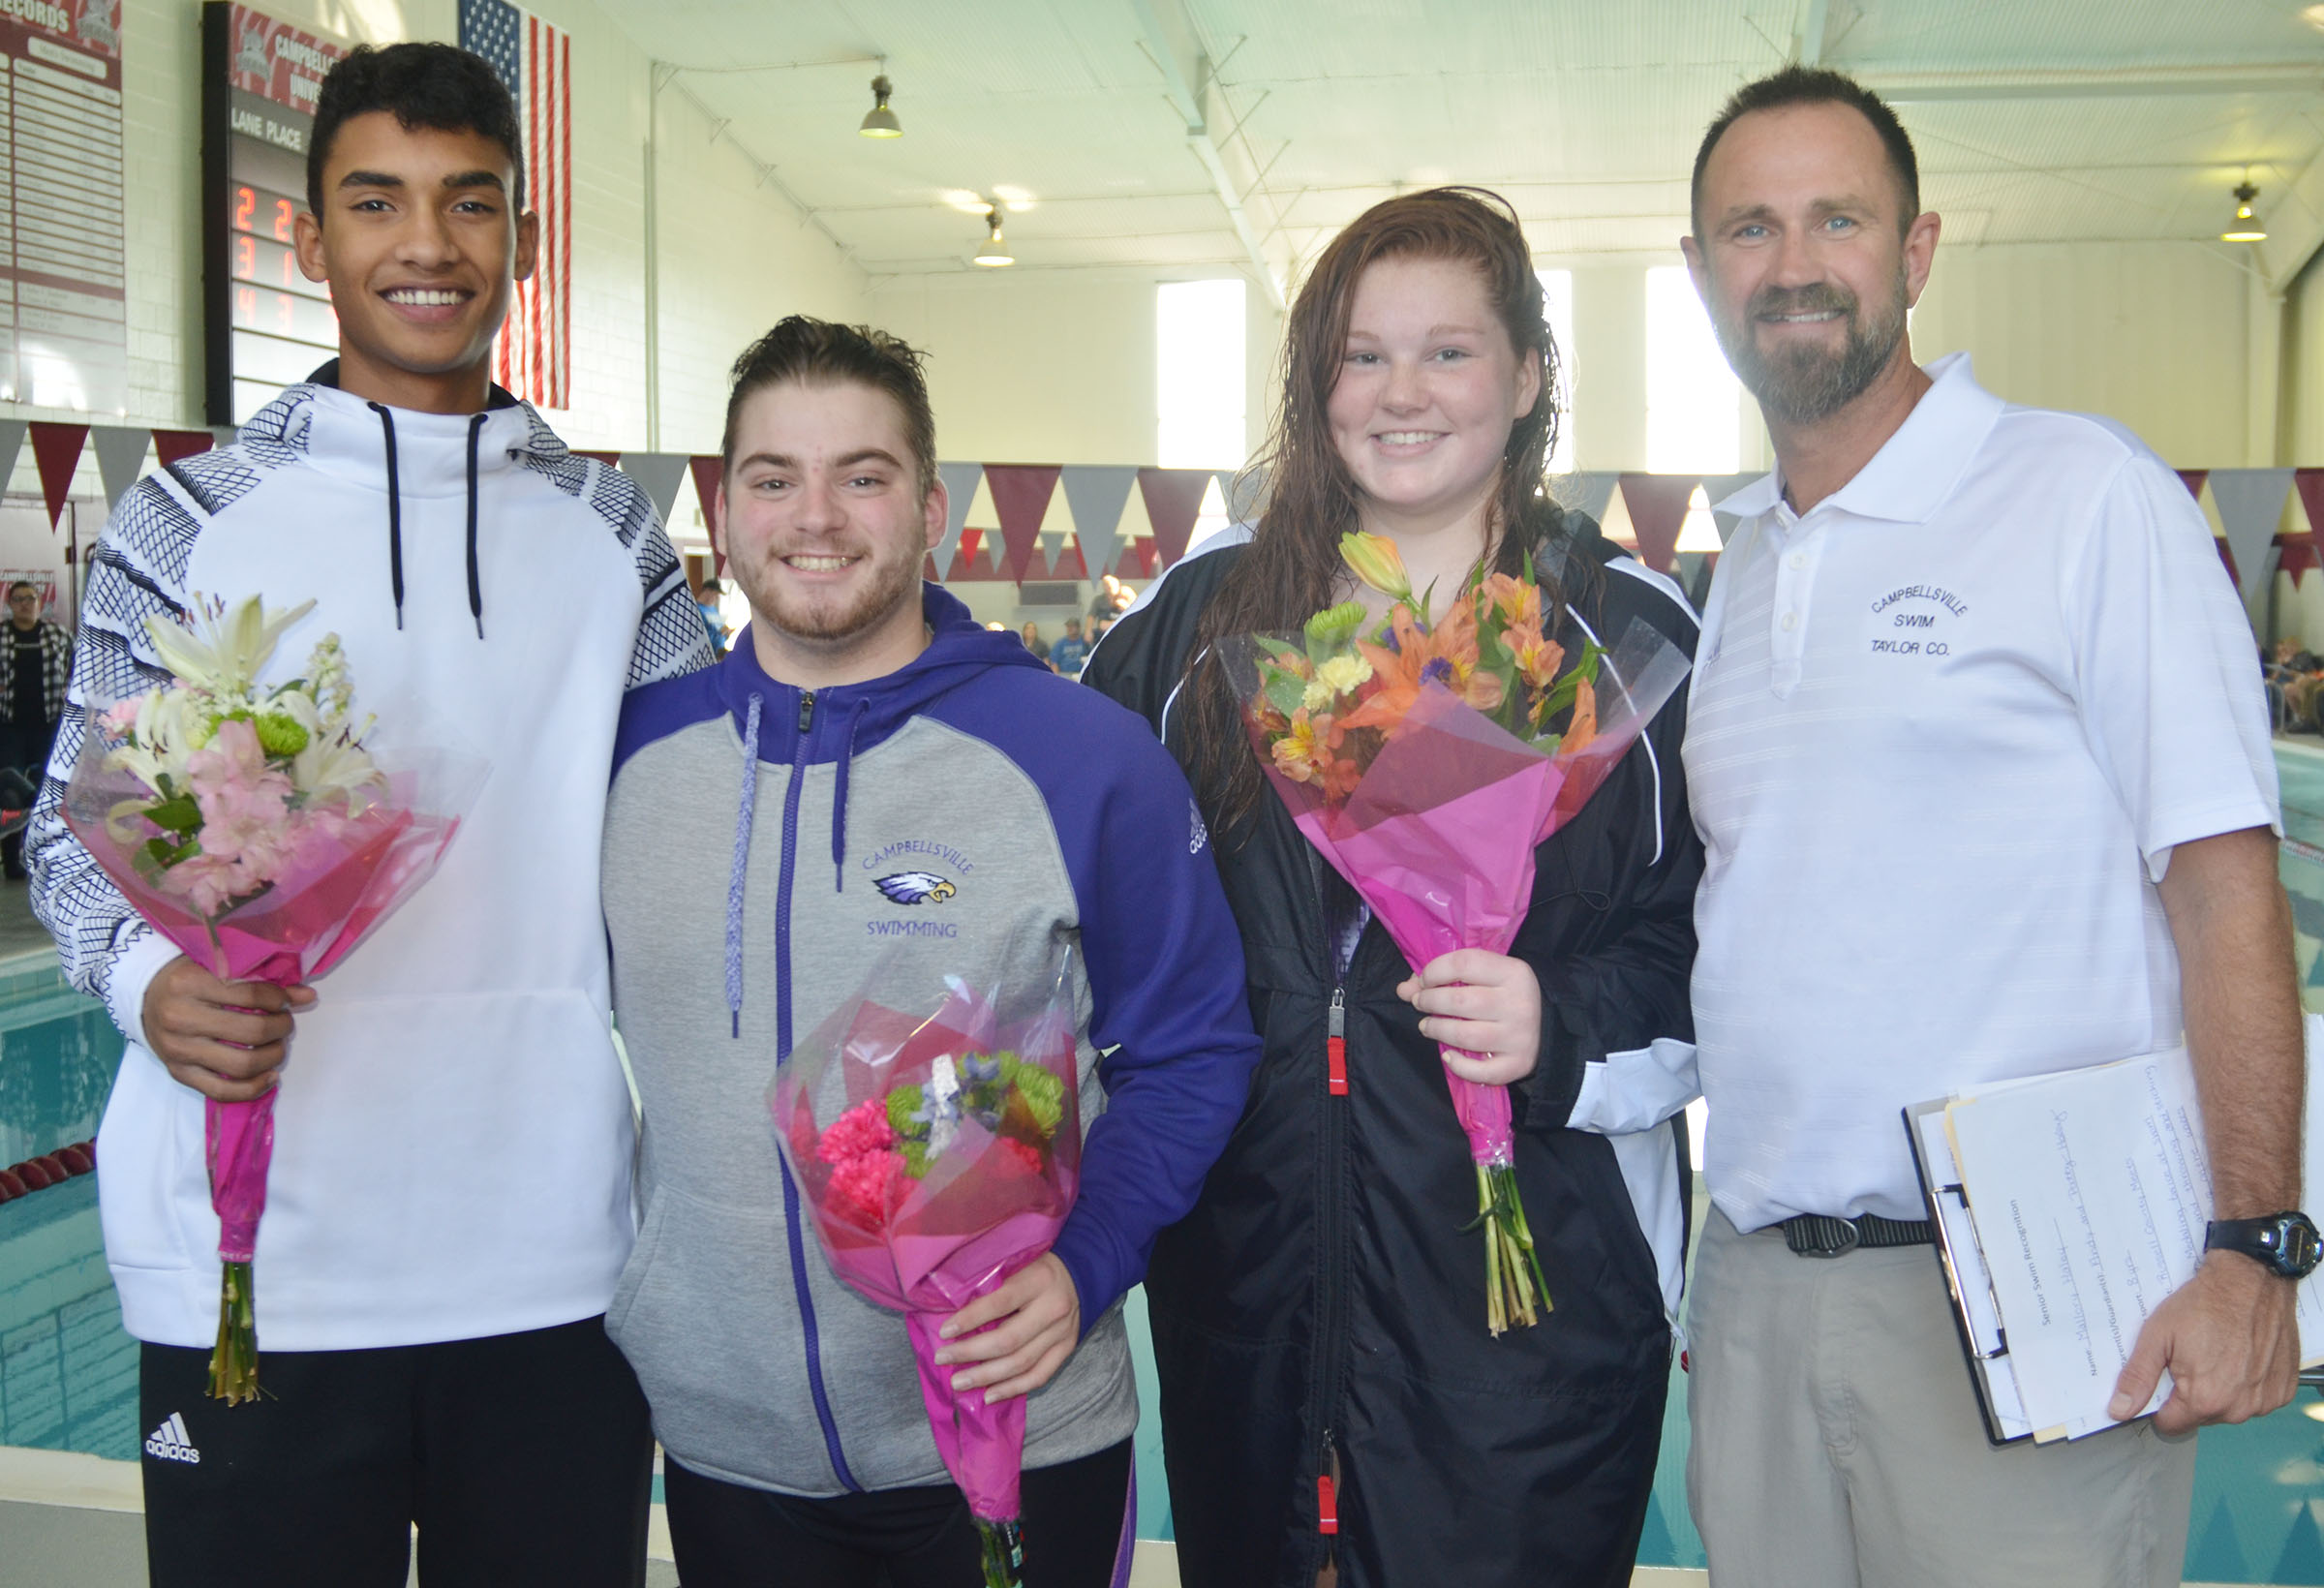 CHS seniors, from left, Daniel Silva, Jon Tanner Coppage and Mallory Haley are honored. They are pictured with their coach, Steve Doss.